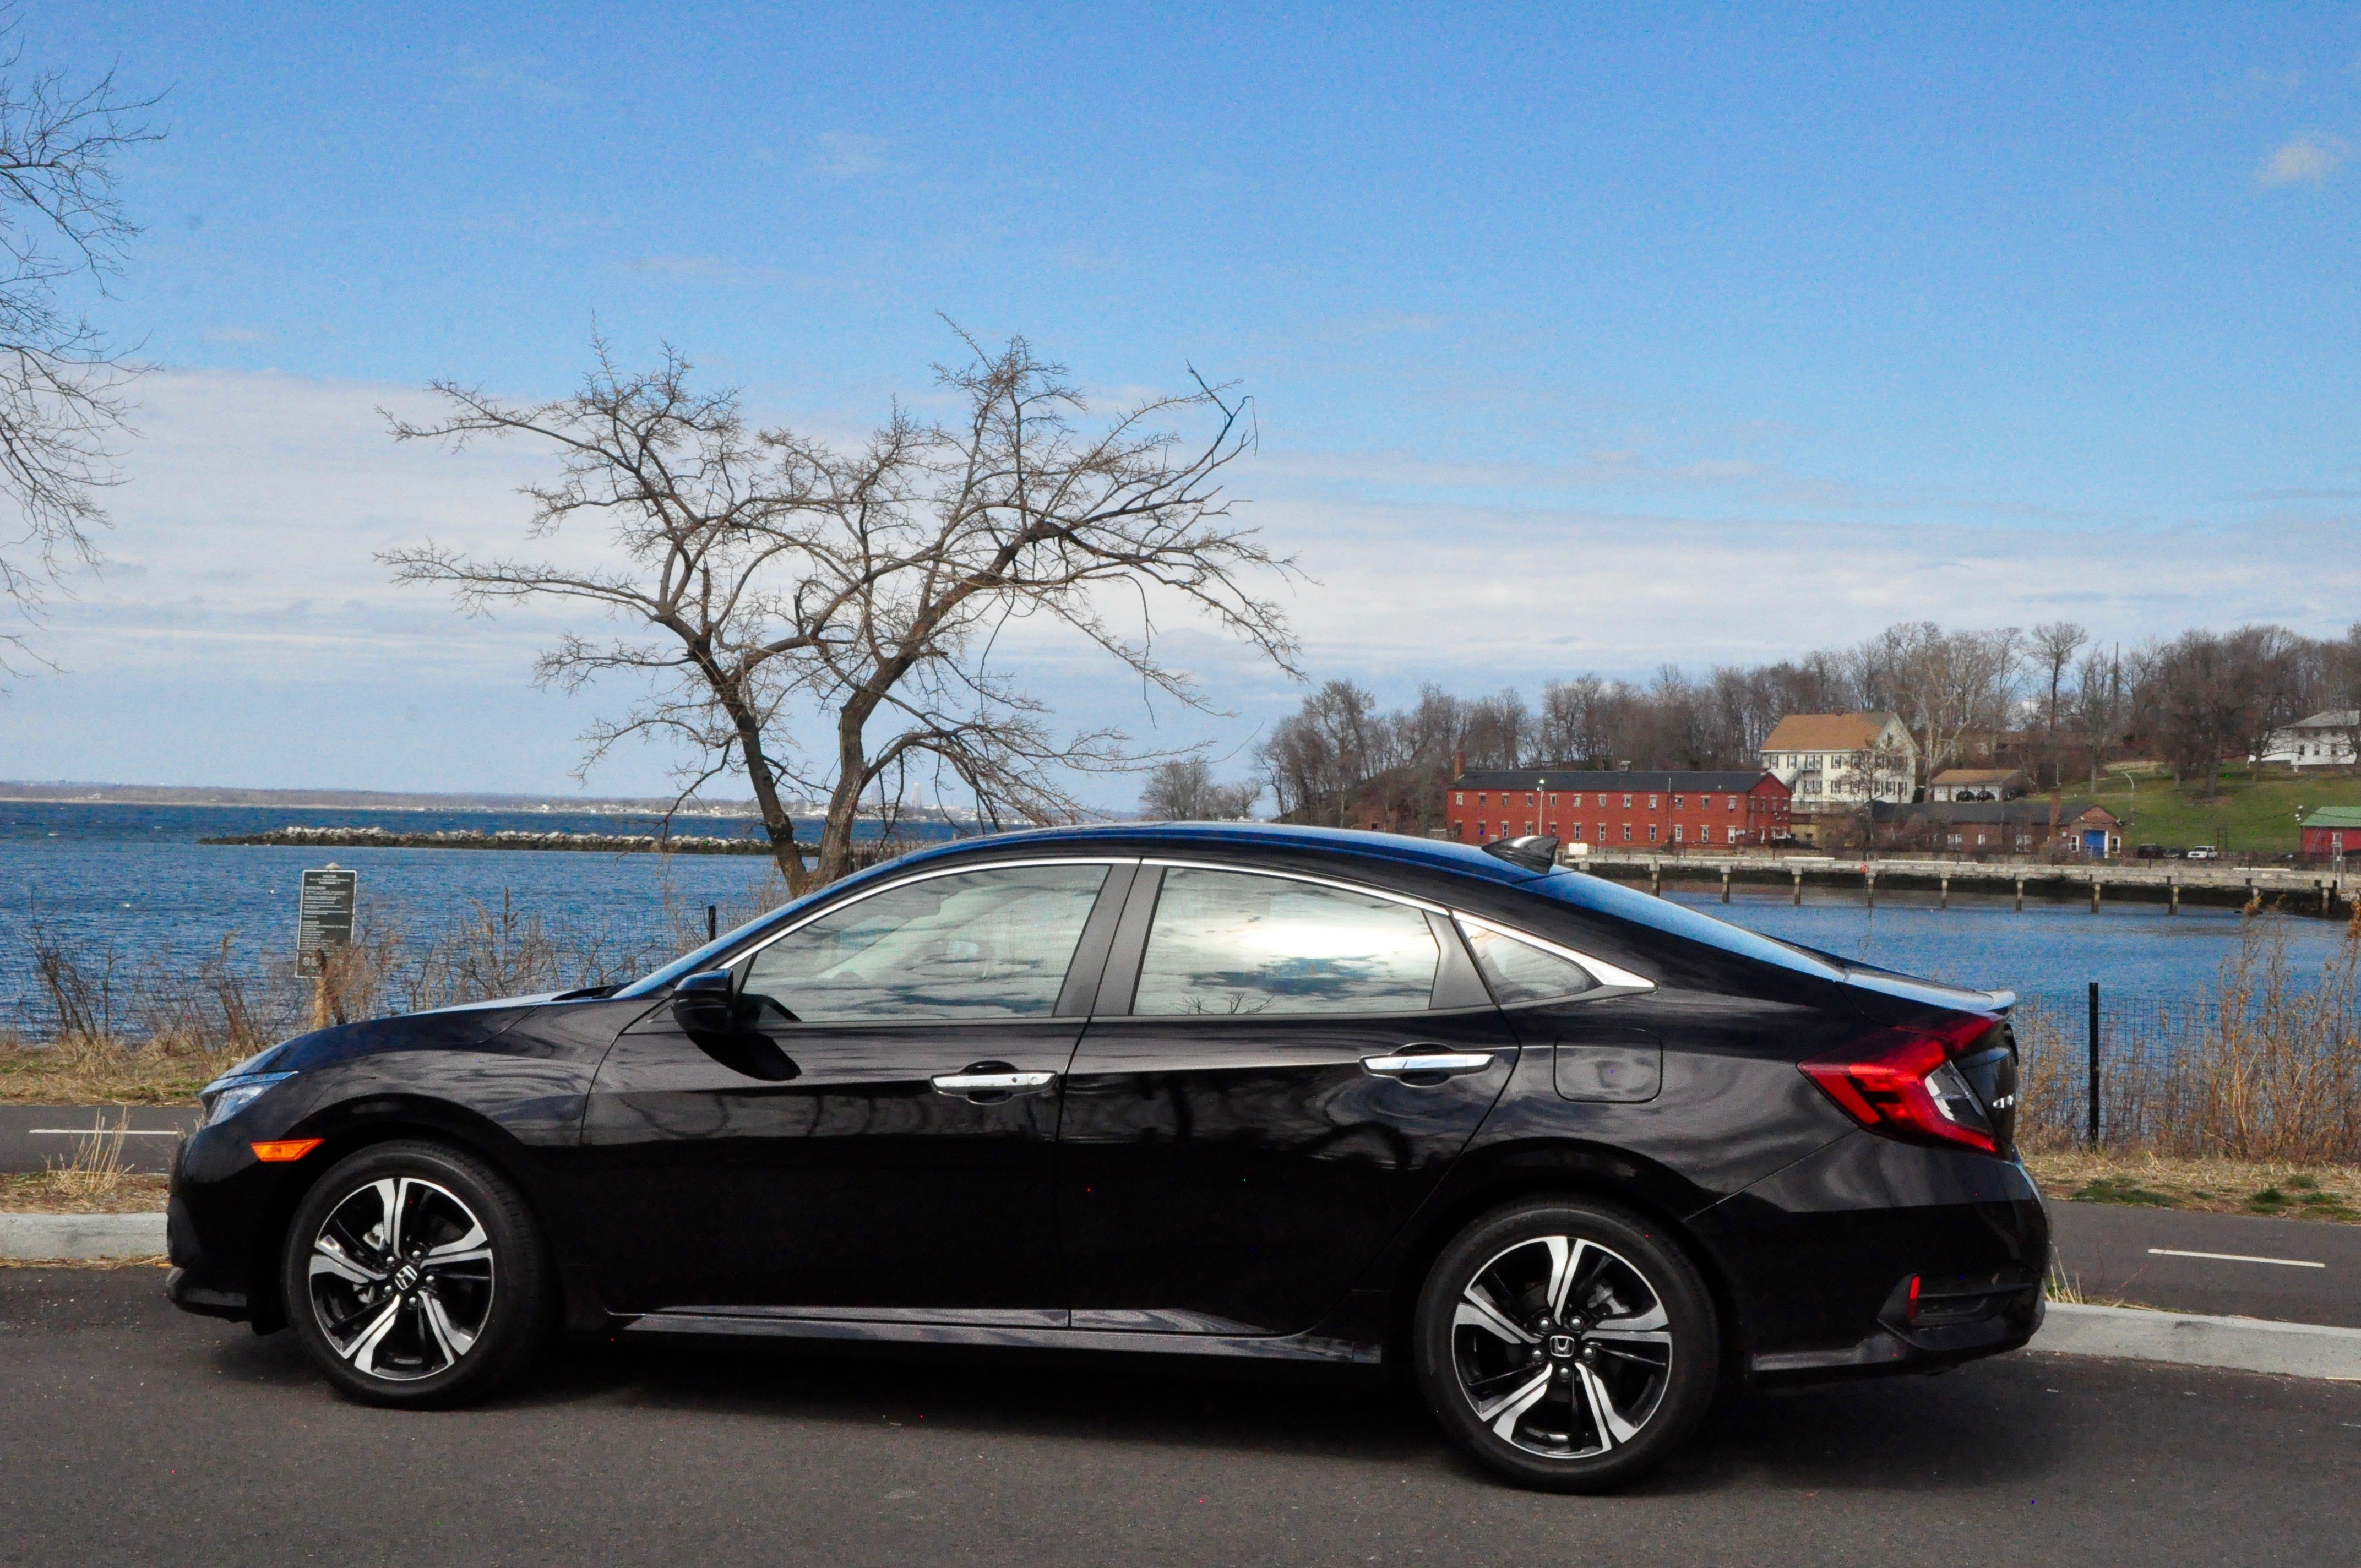 2016 honda civic touring road test and review frequent. Black Bedroom Furniture Sets. Home Design Ideas